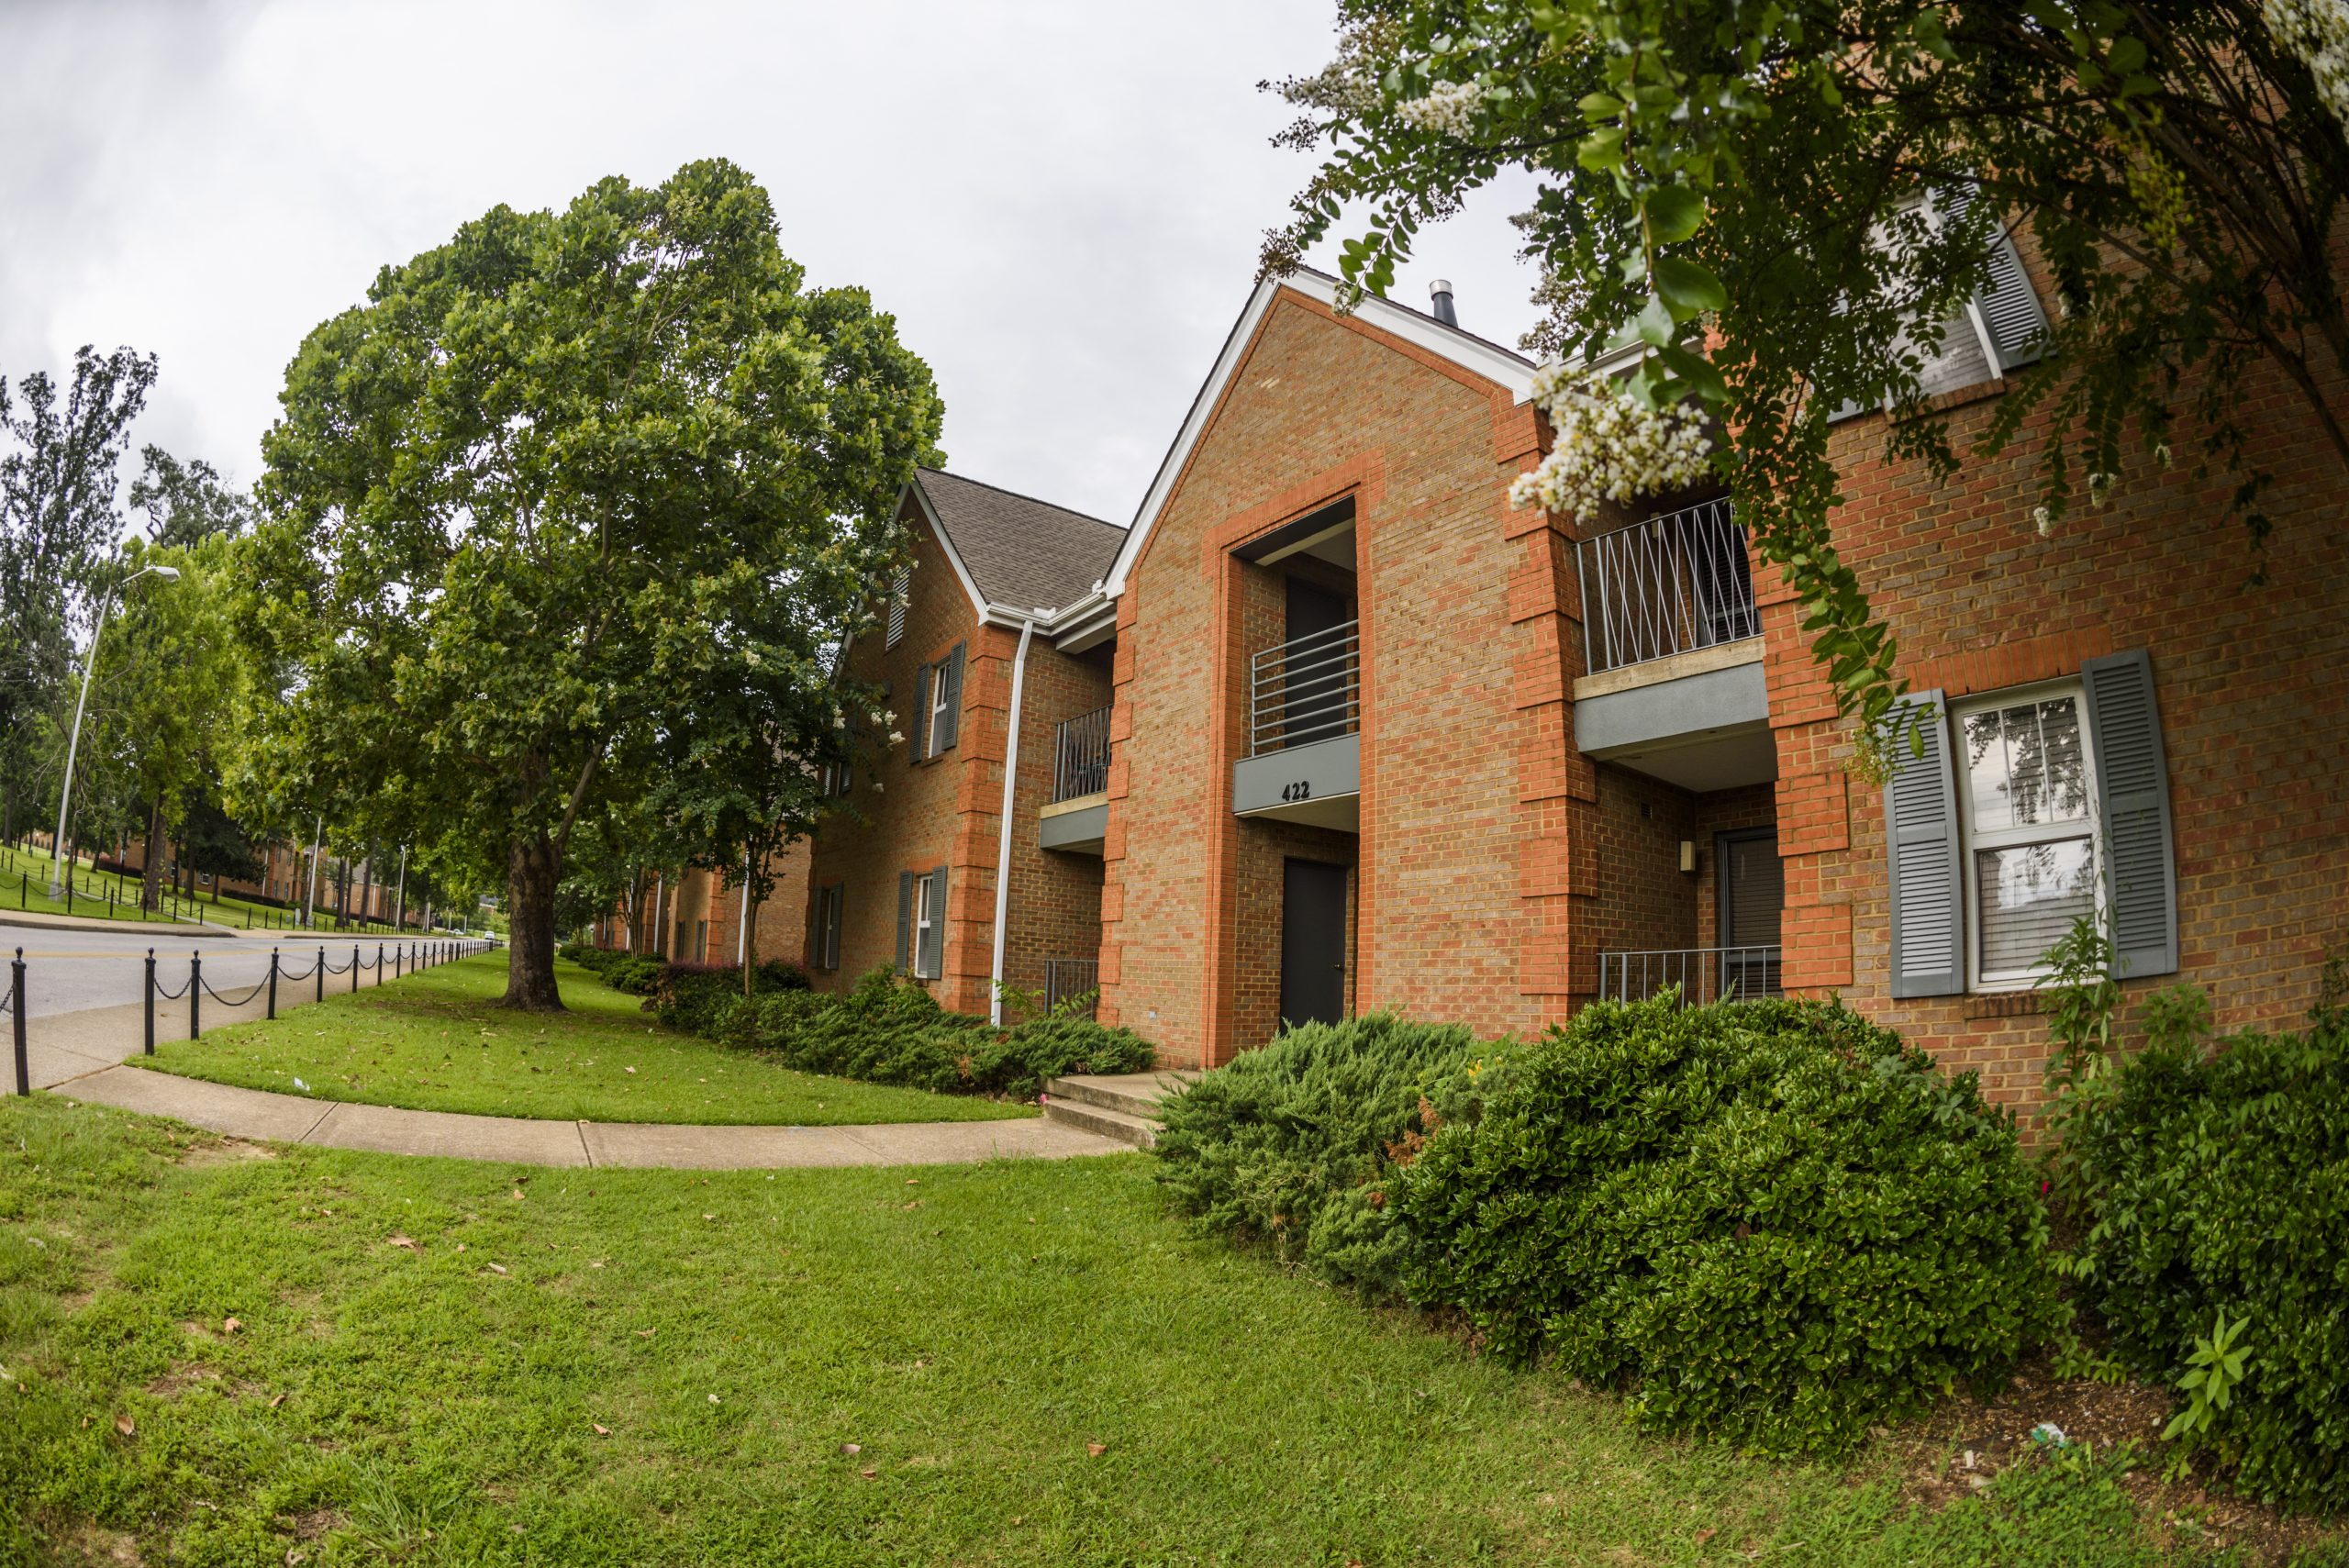 Bryce Lawn Apartments